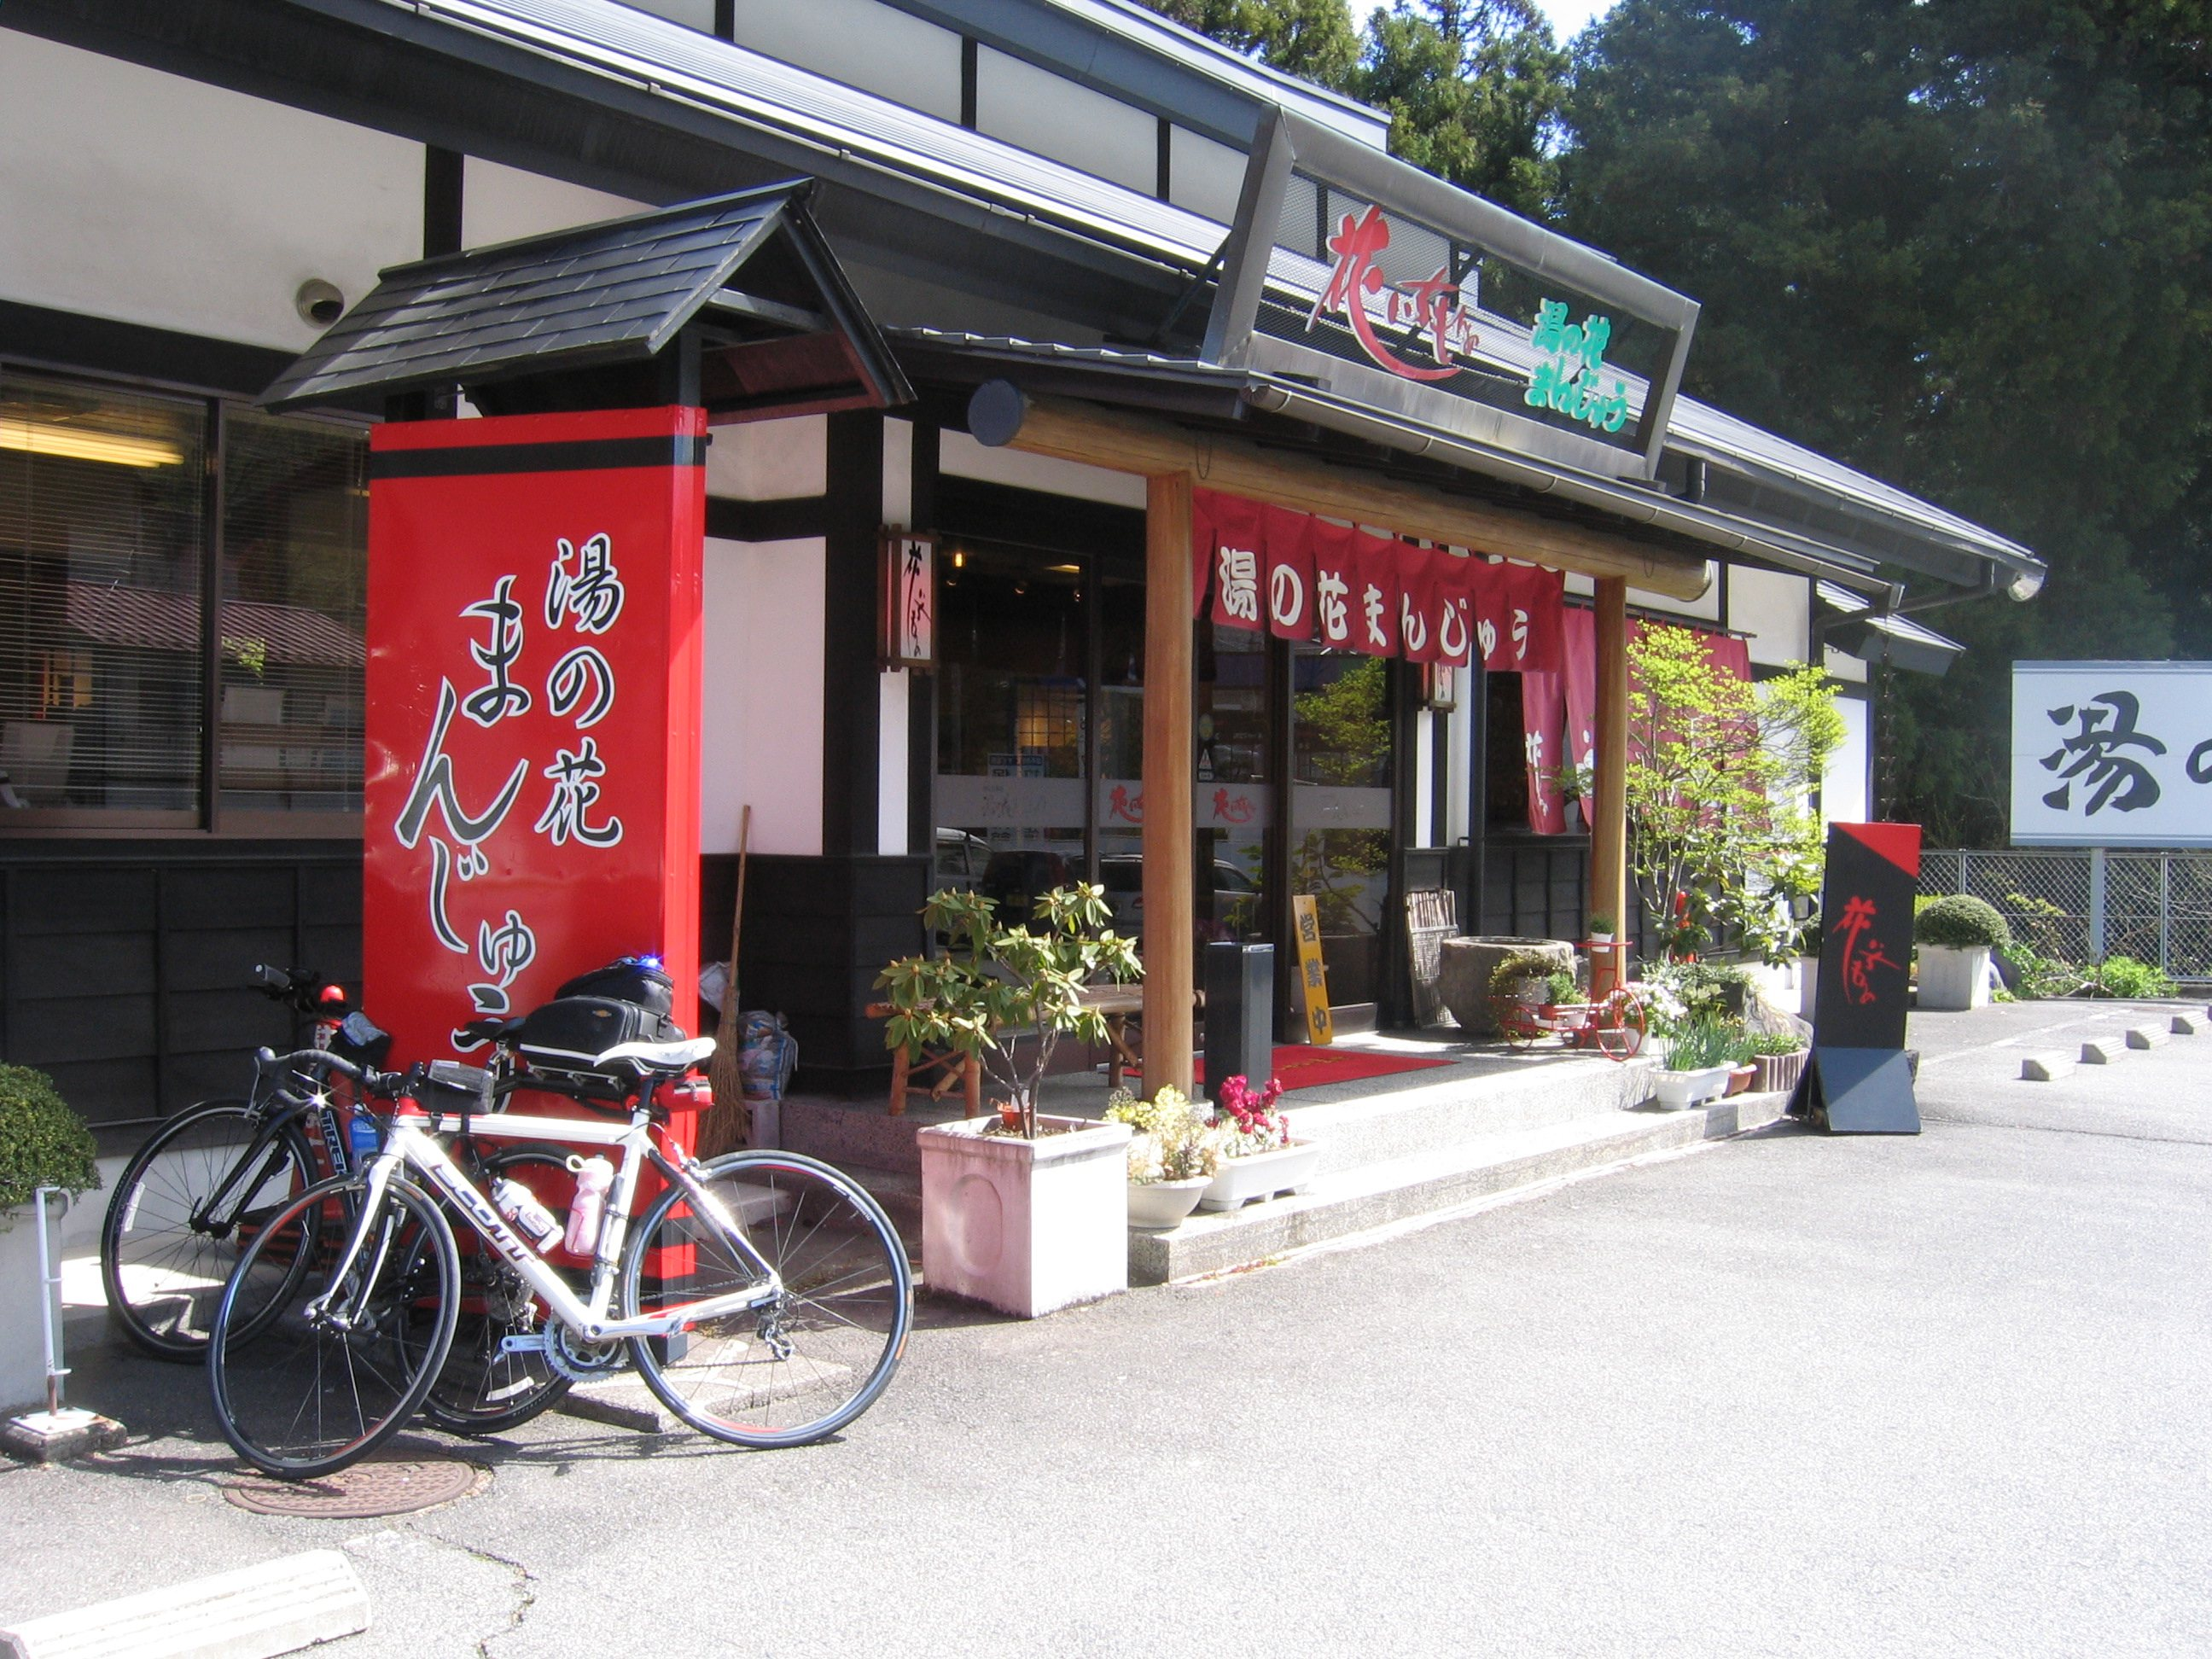 my bicycle in front of the cooky shop.jpg